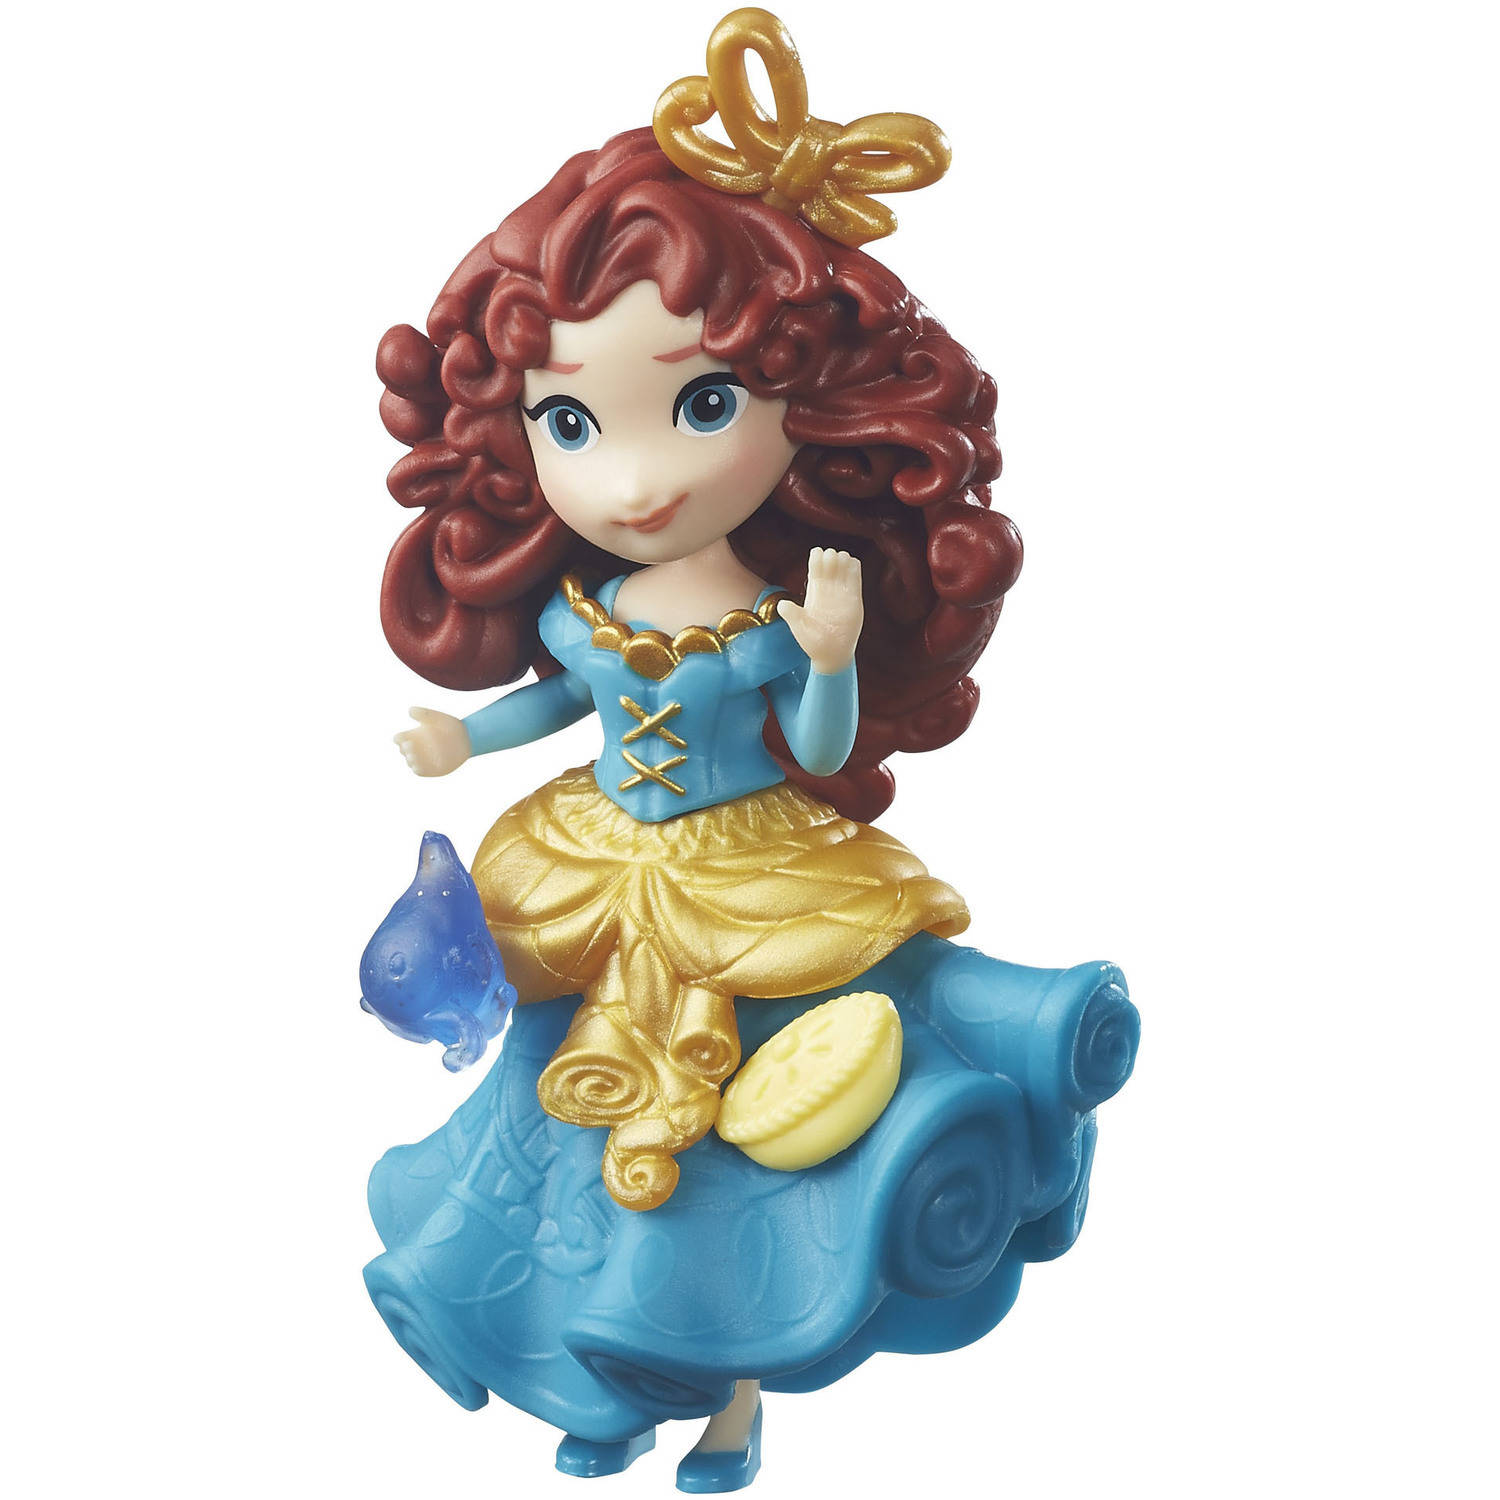 Disney Princess Little Kingdom Classic Merida by Hasbro